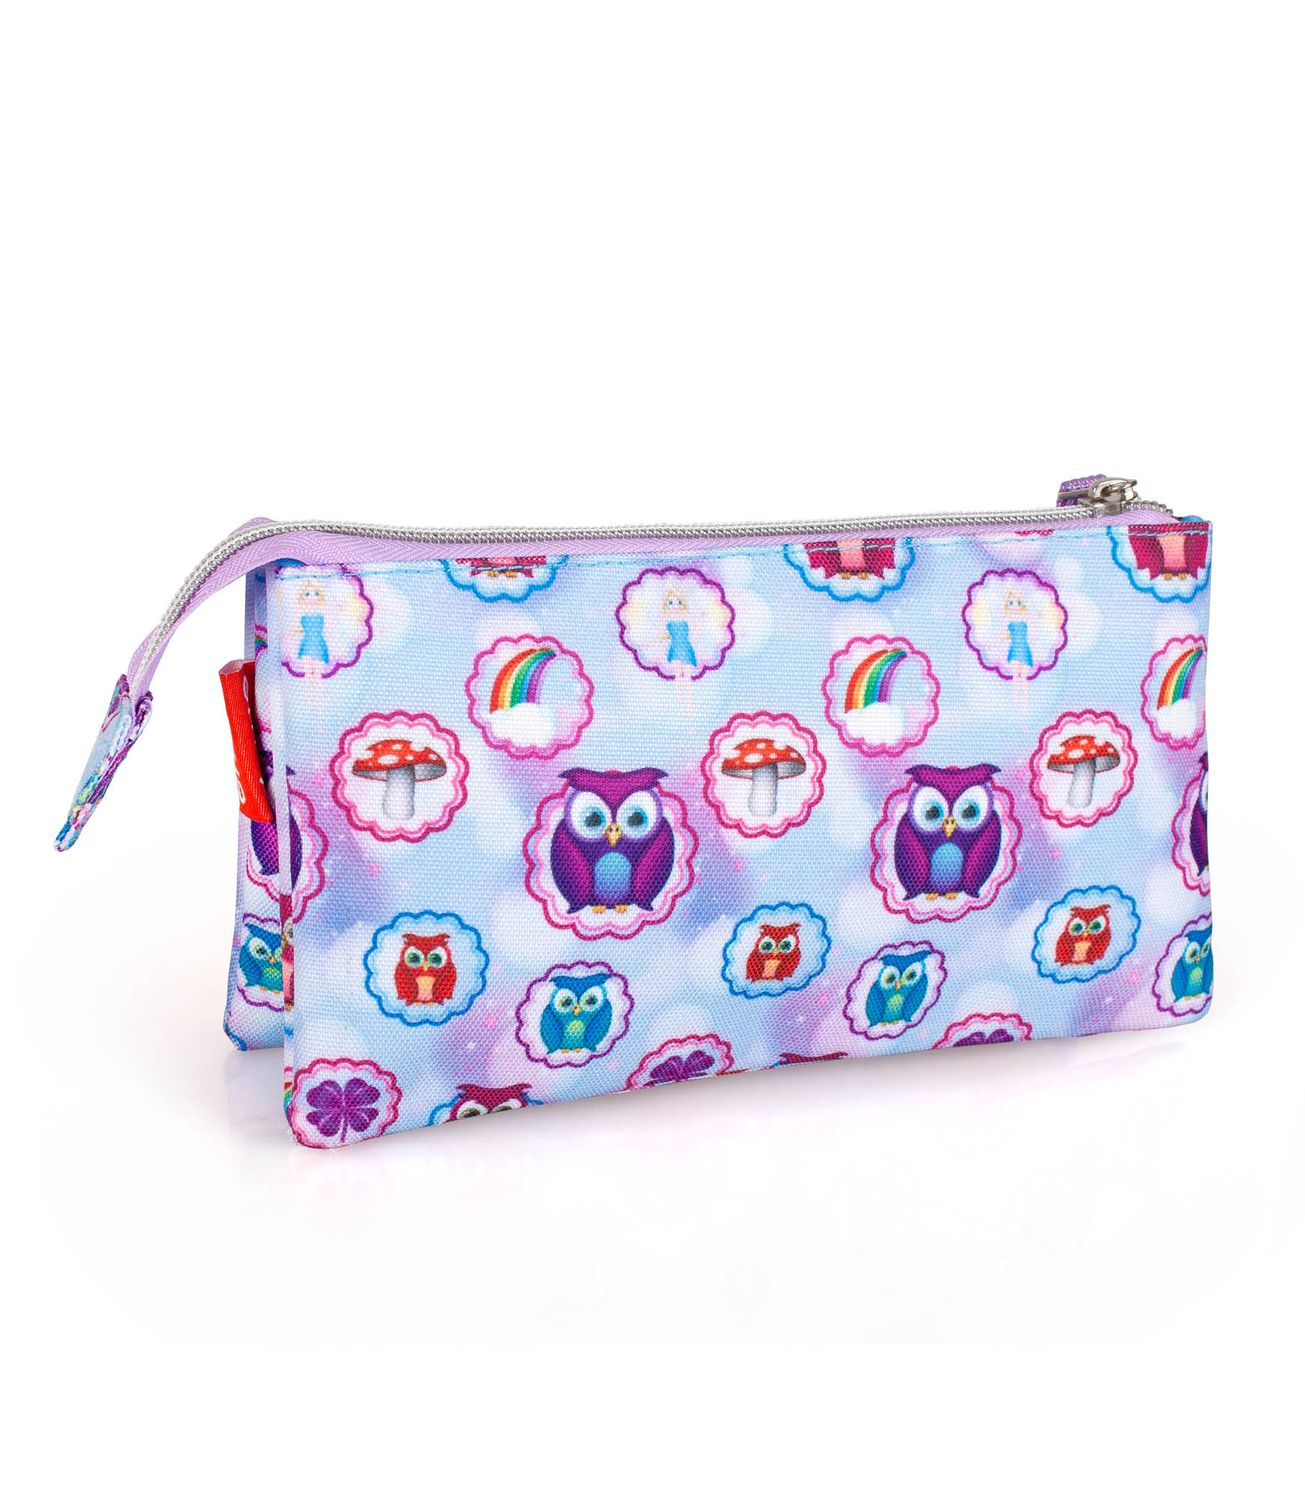 Triple Compartment Pencil Case EMOJI Official PINK OWLS – image 2